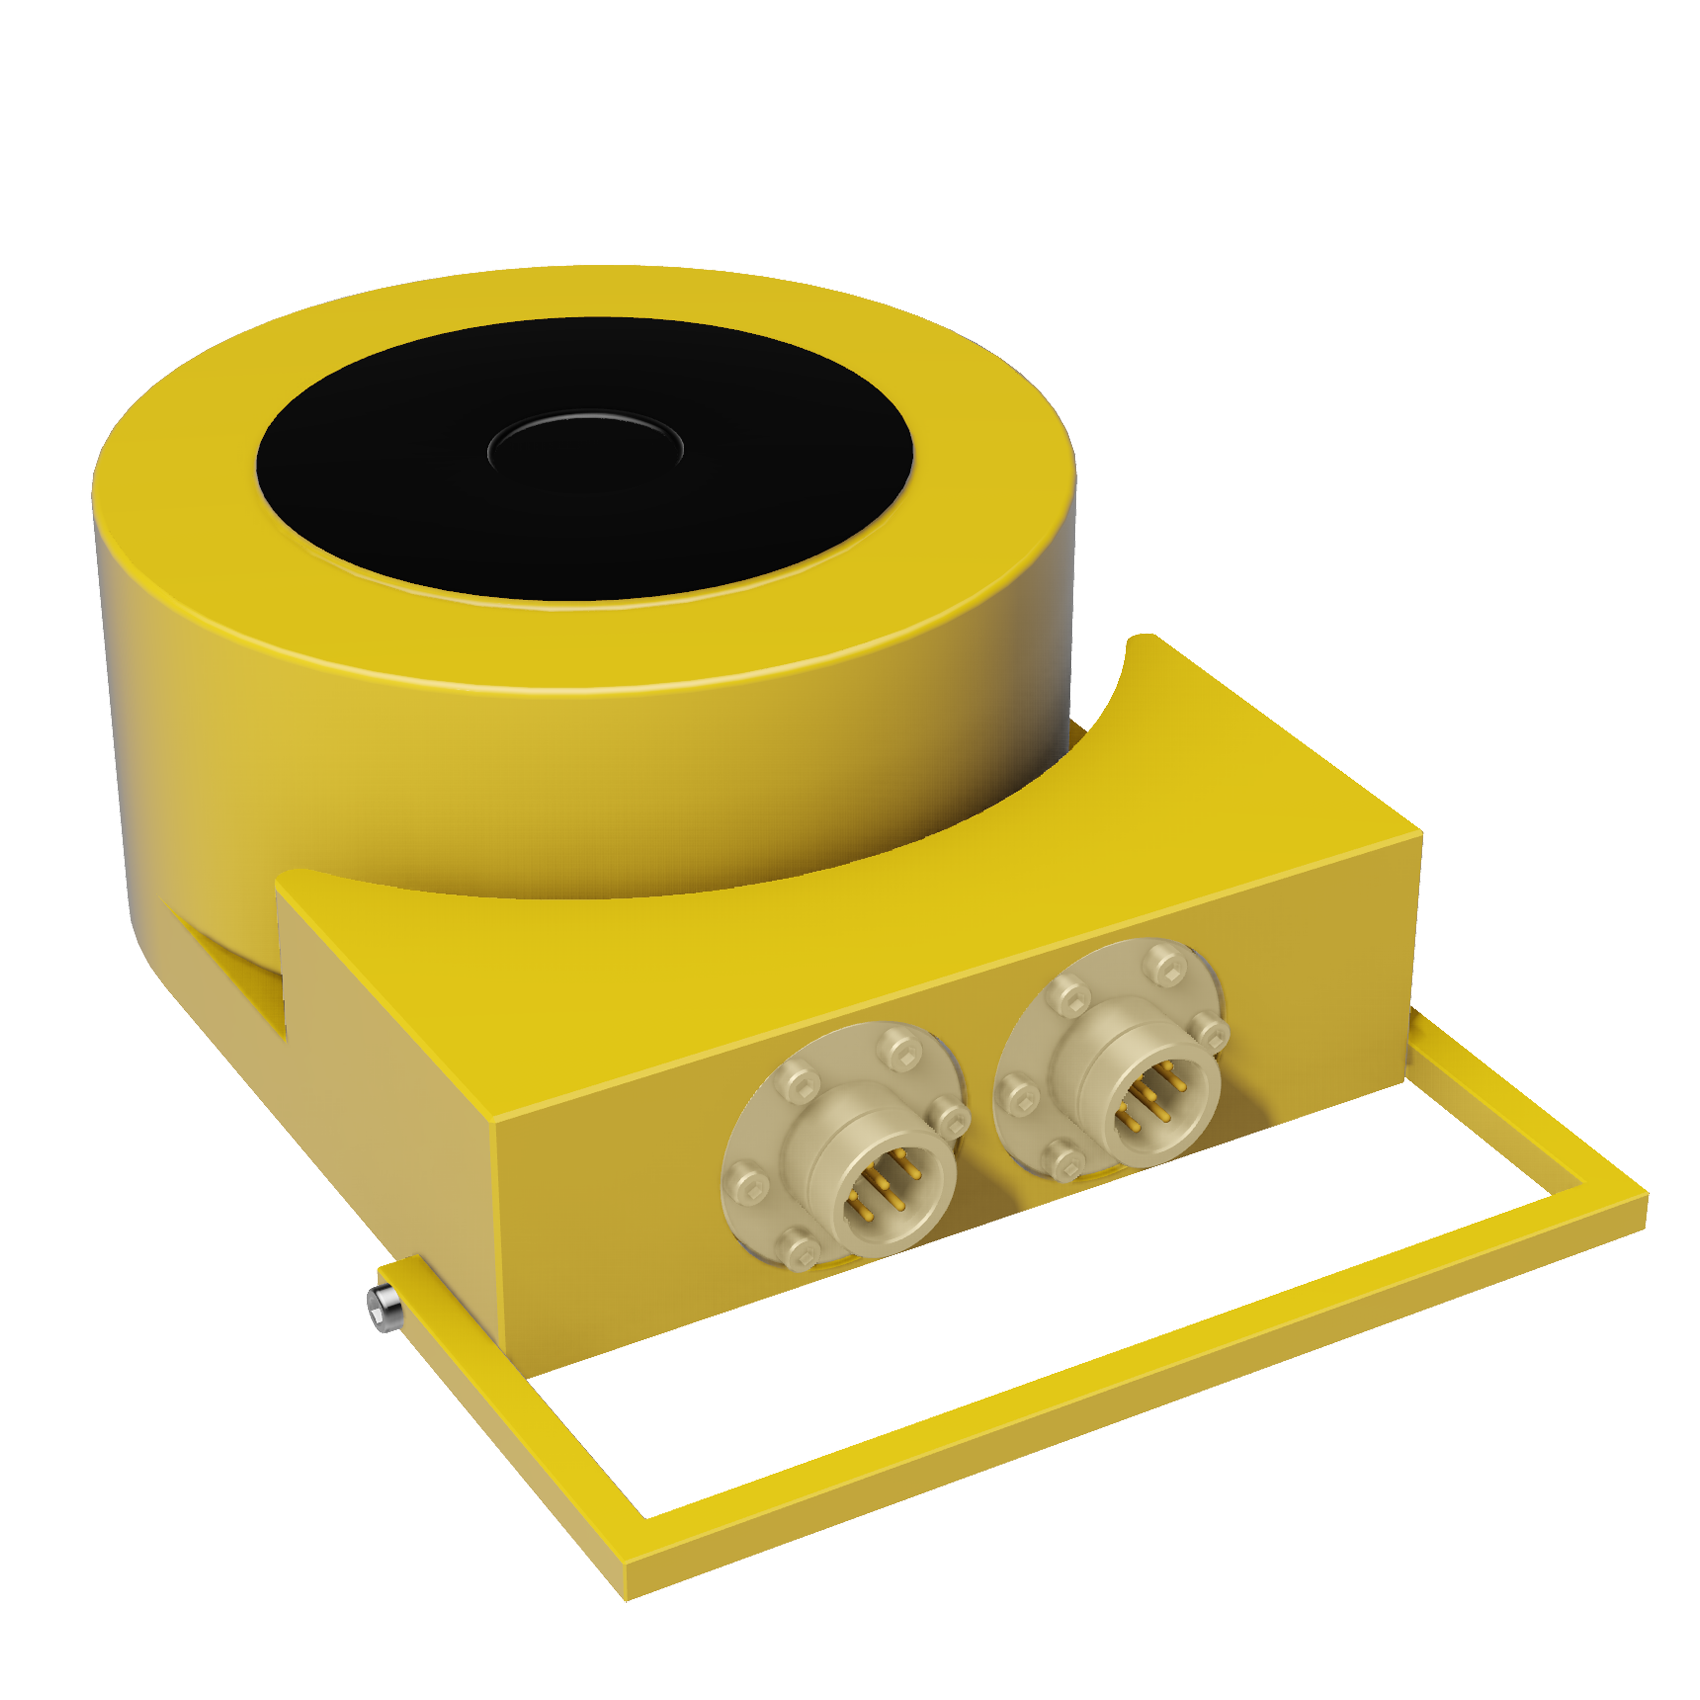 Compression png. Subsea load cell scansense jpg transparent